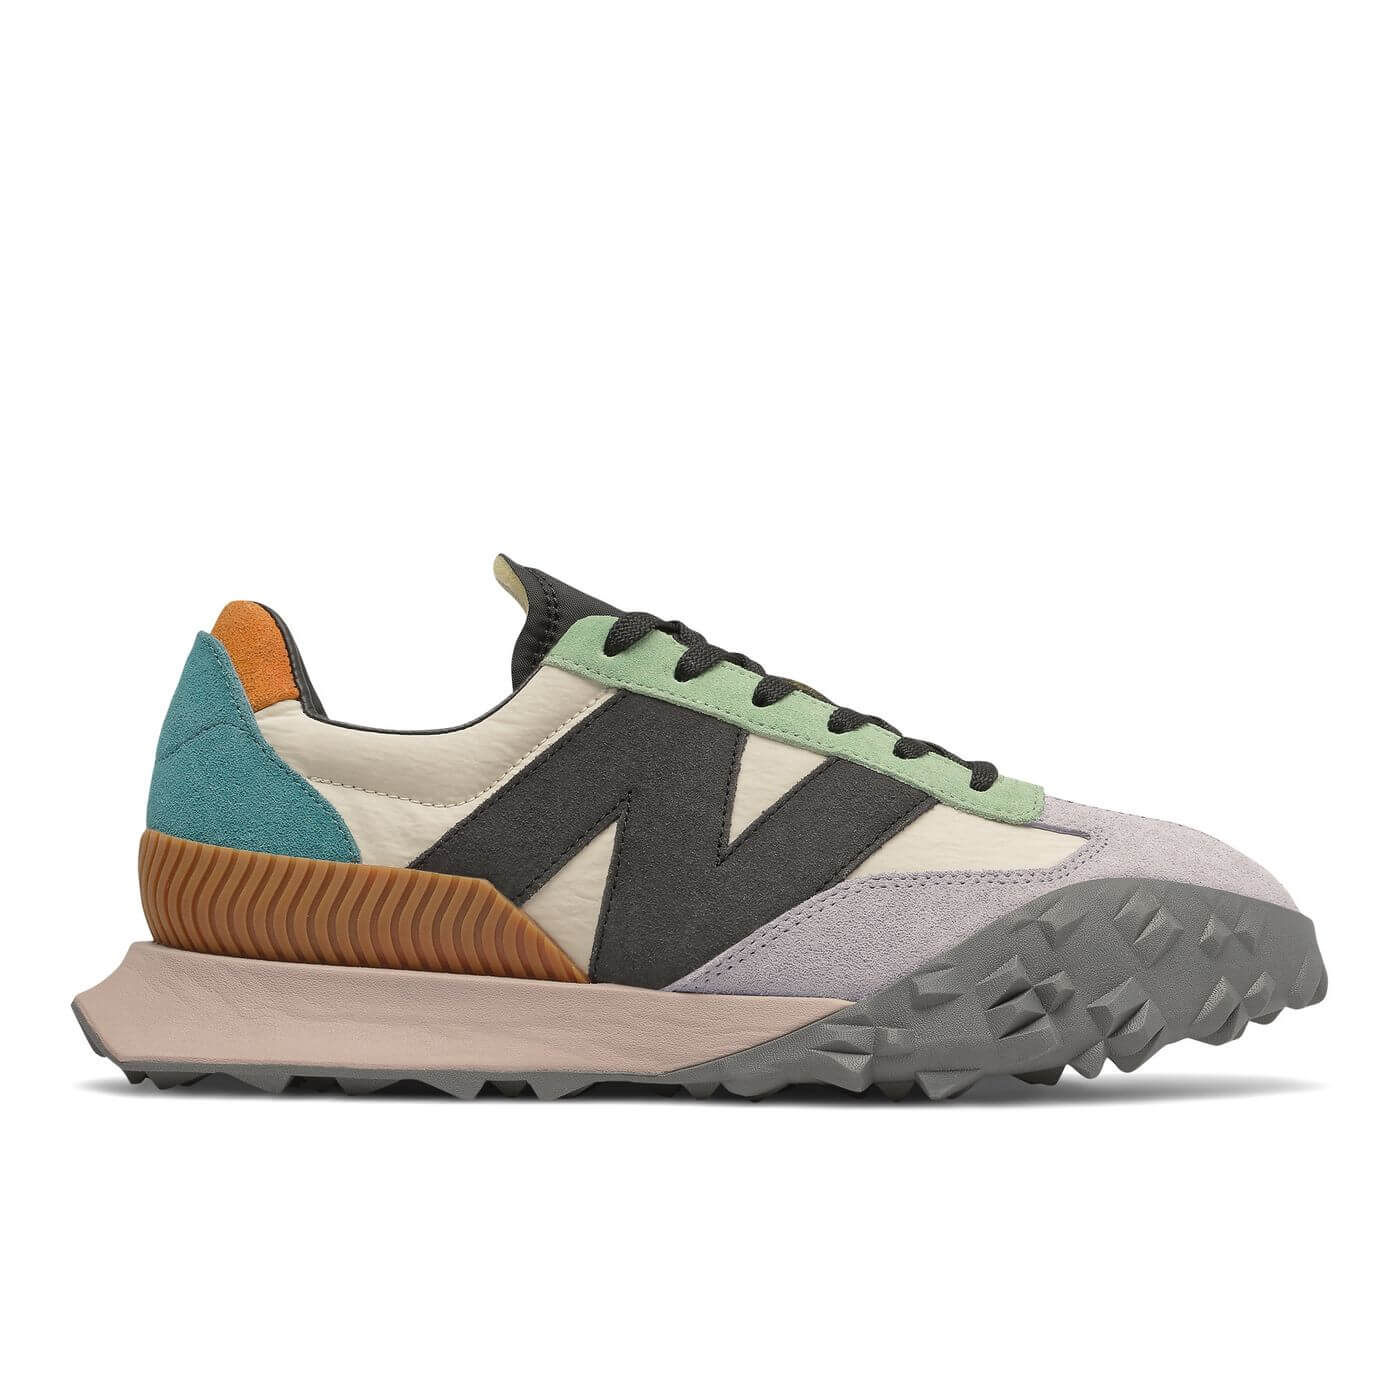 new new balance sneaker model - New Balance - Shifted Collection - XC-72